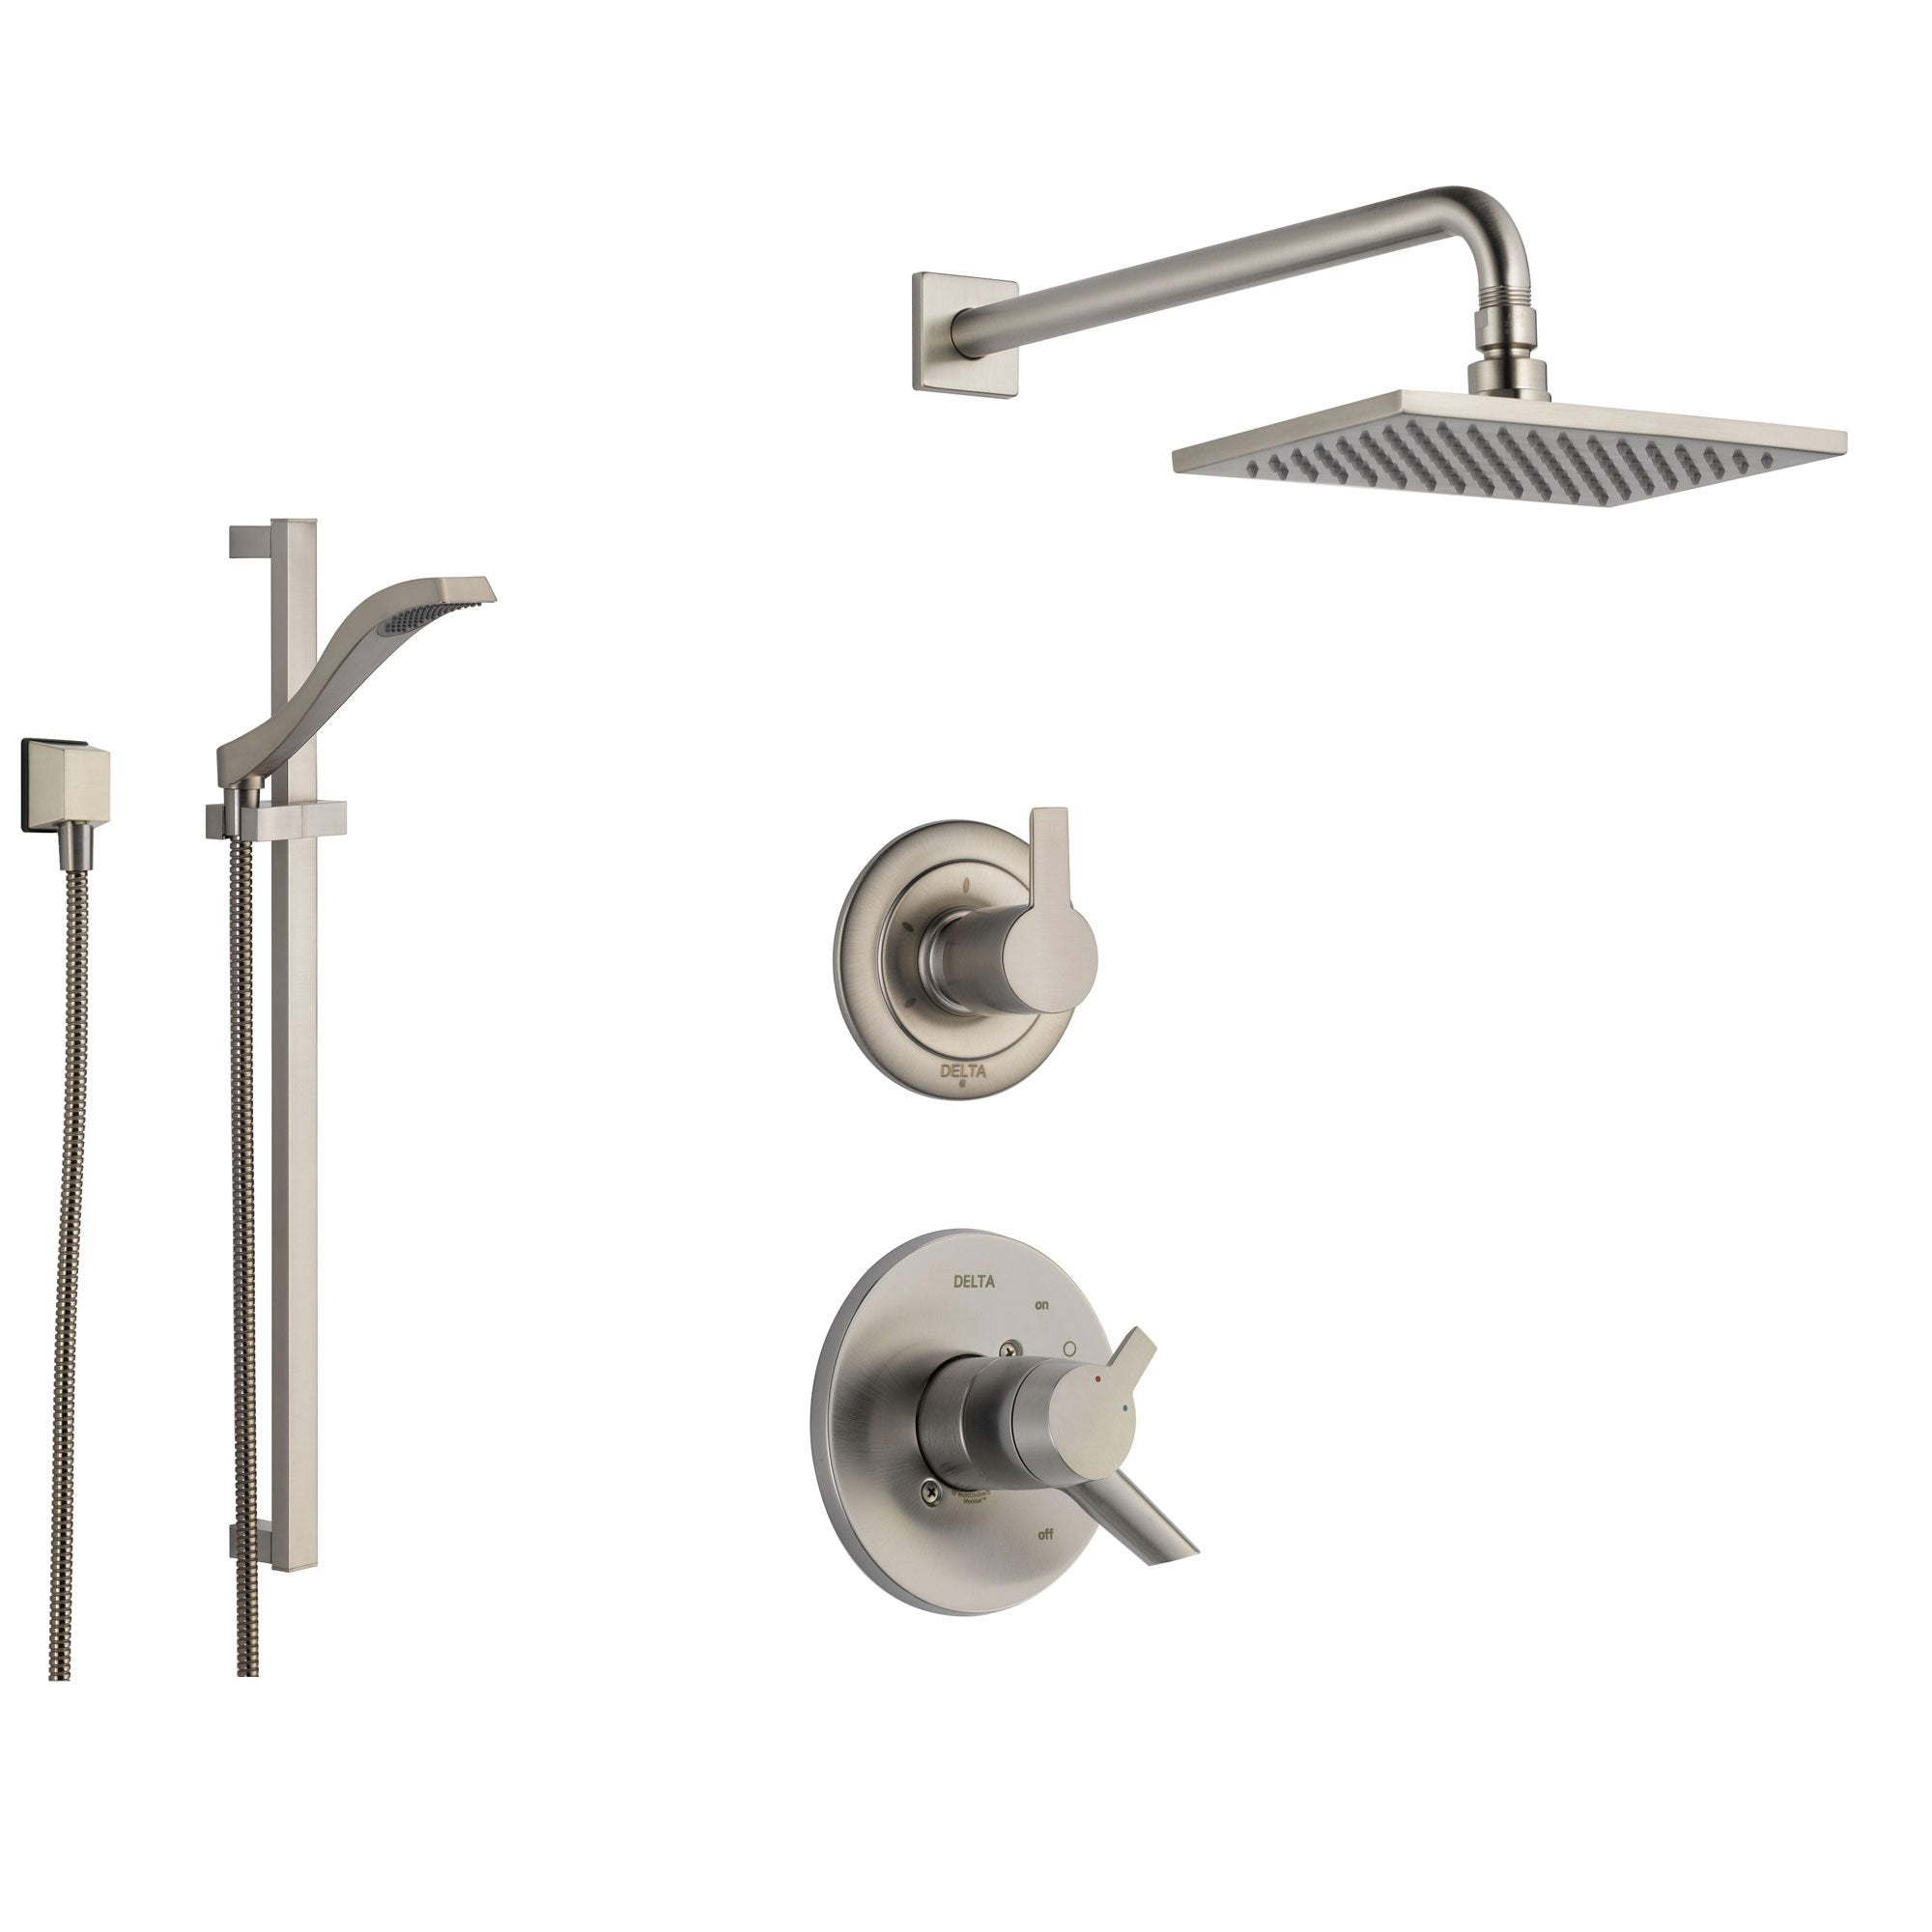 Delta Compel Stainless Steel Shower System with Dual Control Shower Handle, 3-setting Diverter, Modern Square Rain Showerhead, and Handheld Shower SS176182SS